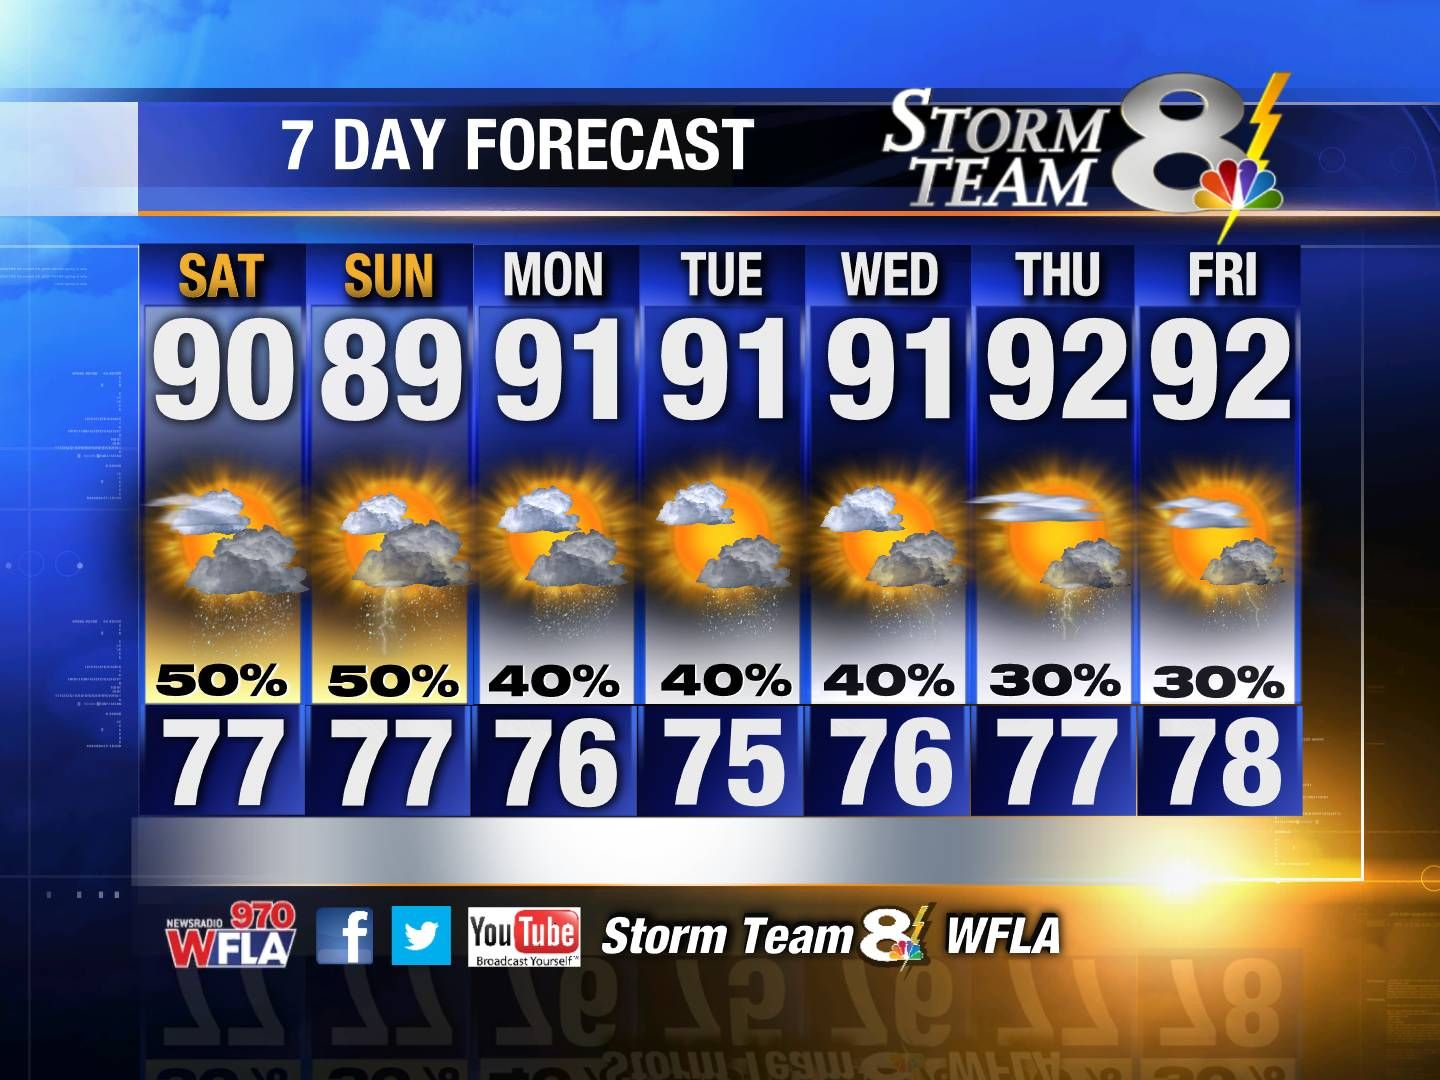 Ahh... A typical summertime forecast in Florida